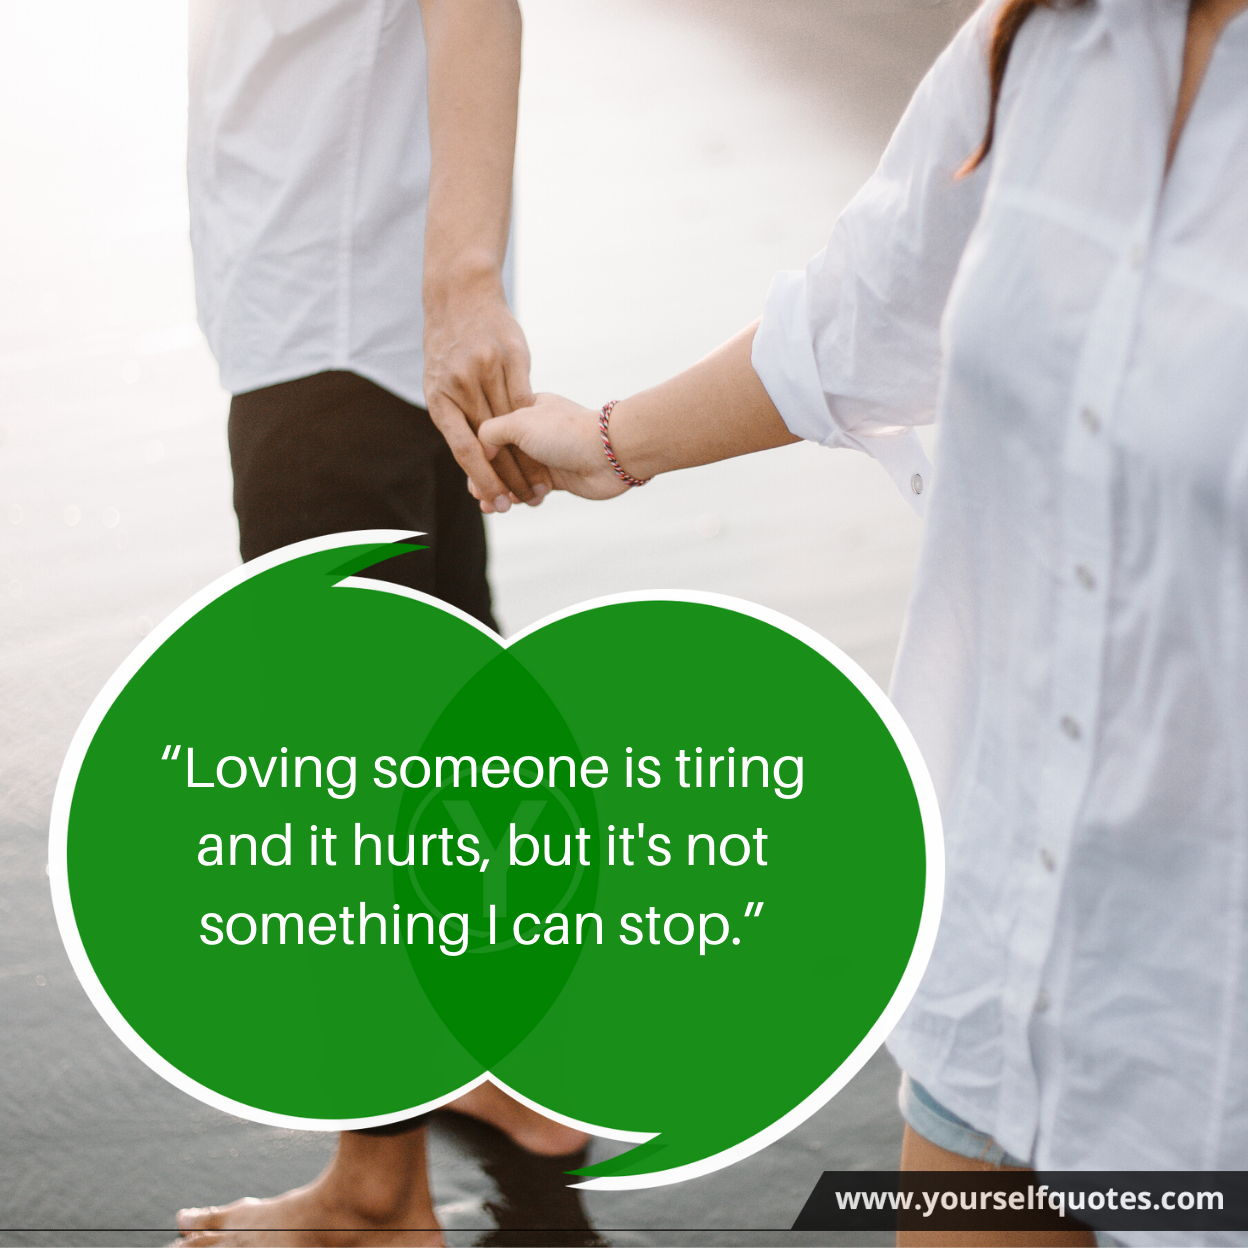 Quotes on Loveing